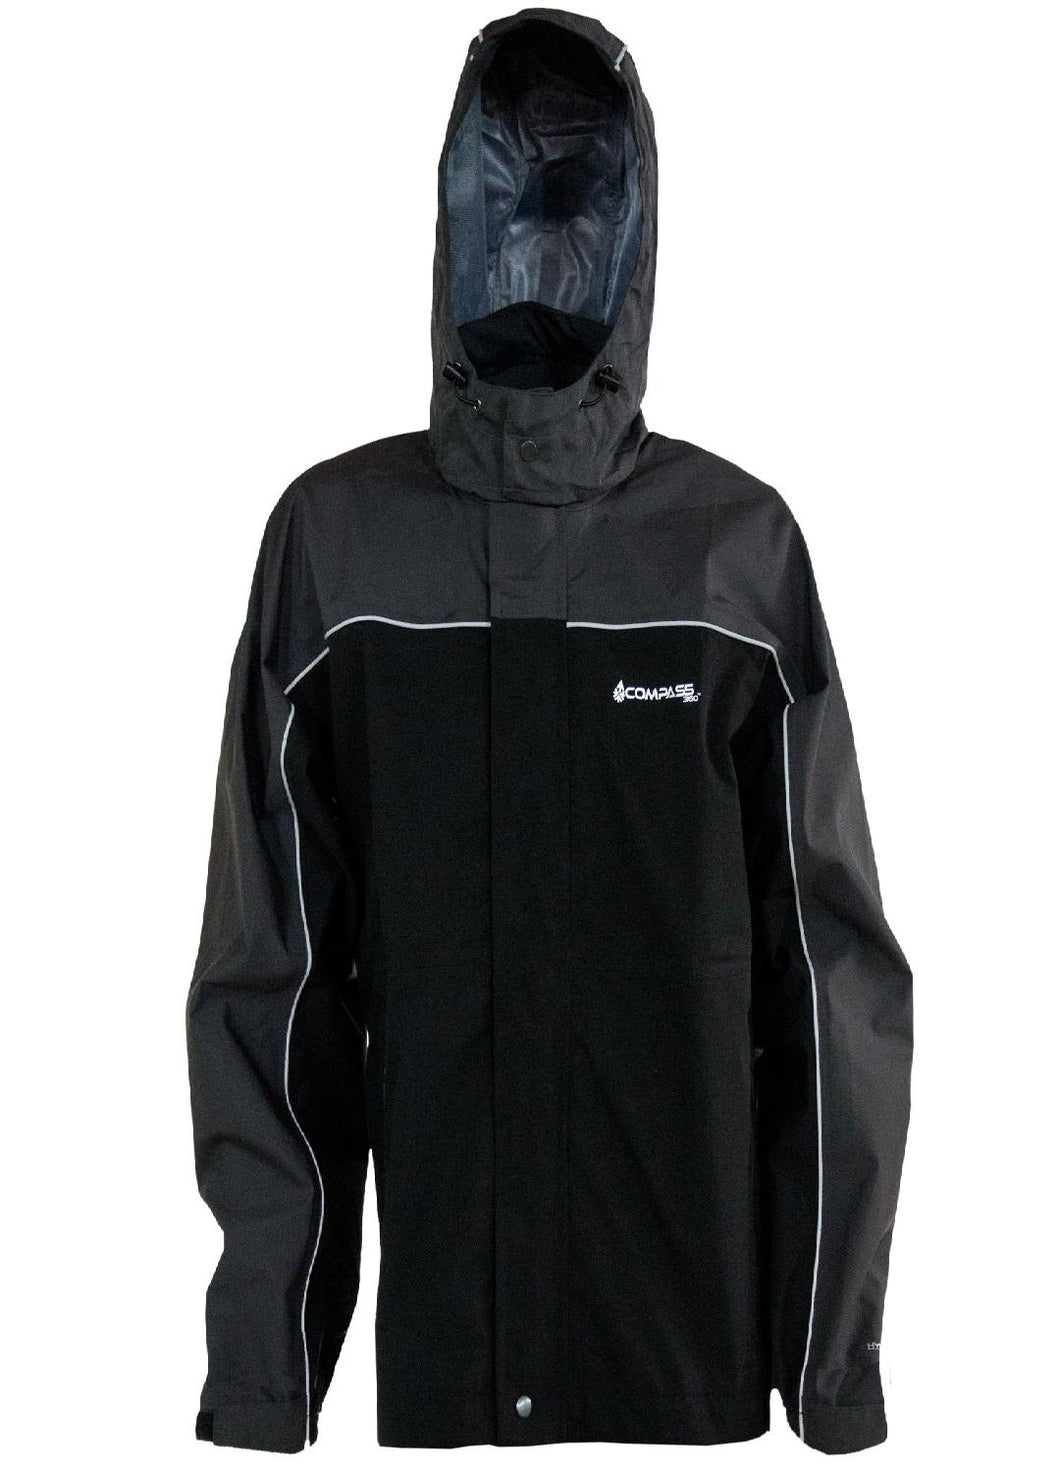 Compass 360 RoadForce Reflective Riding Jacket-Slate-Blk-XX